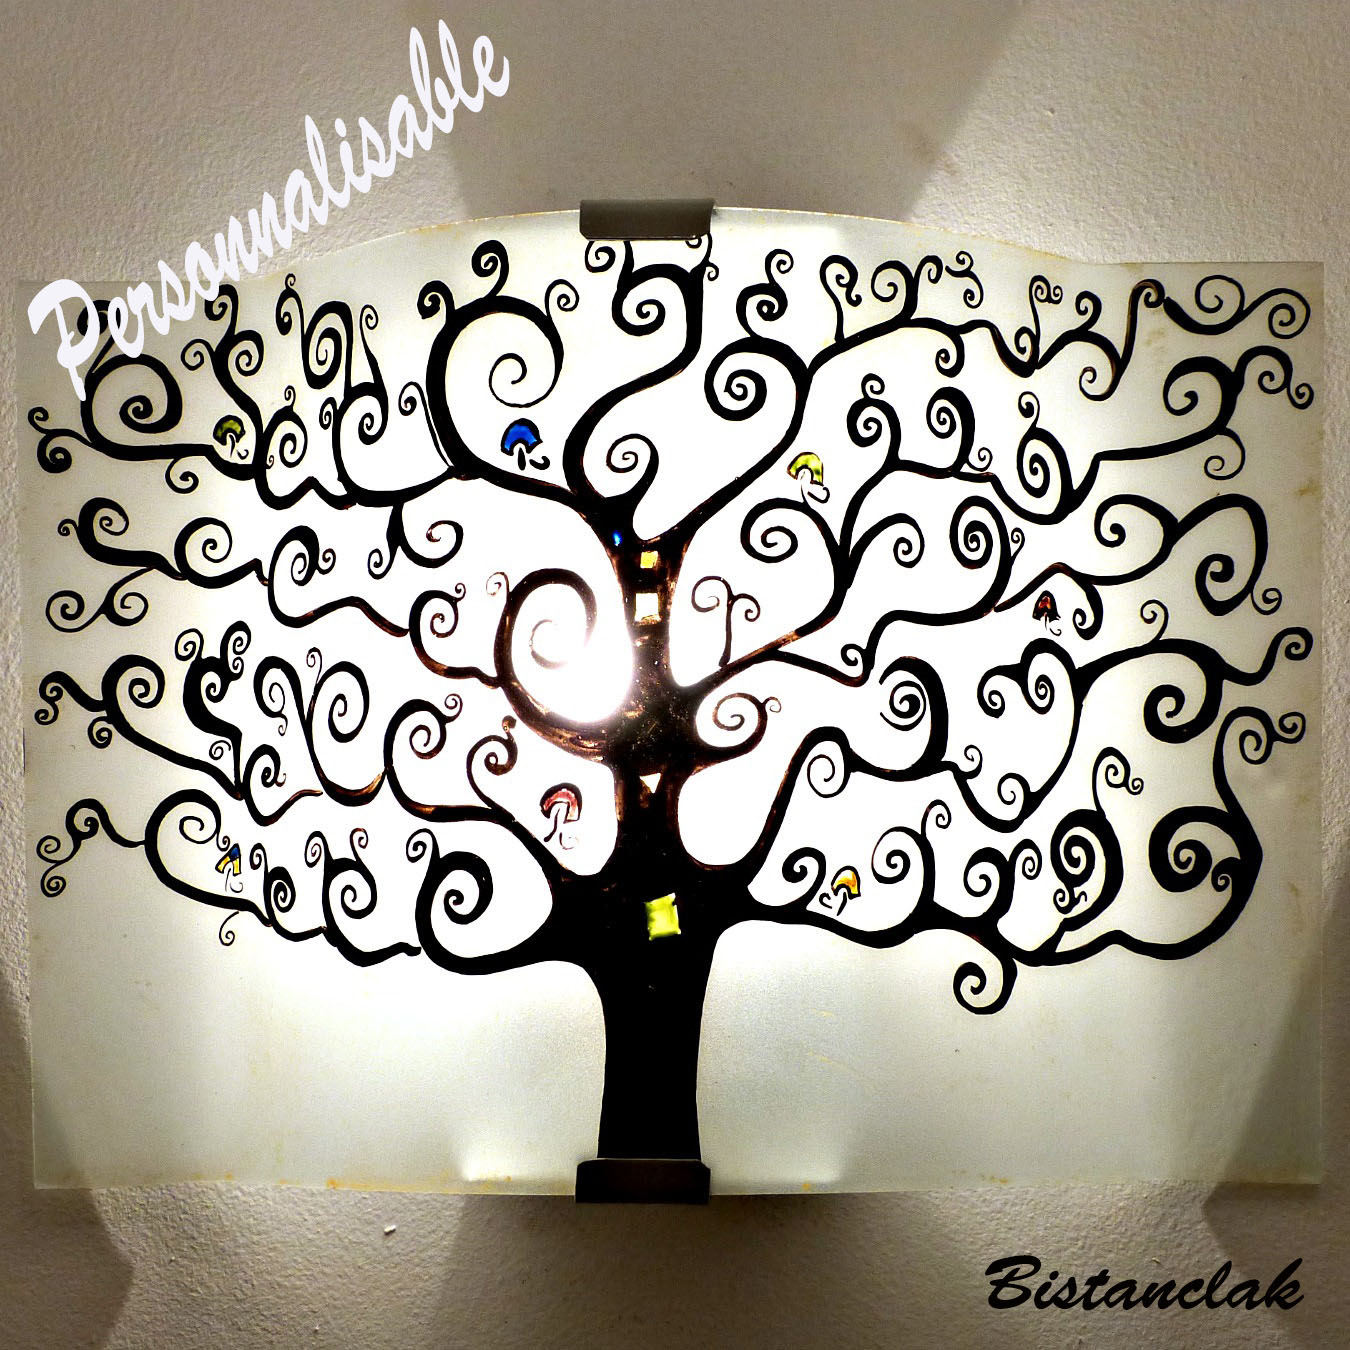 Applique d corative personnaliser motif arbre de vie - Applique decorative murale ...